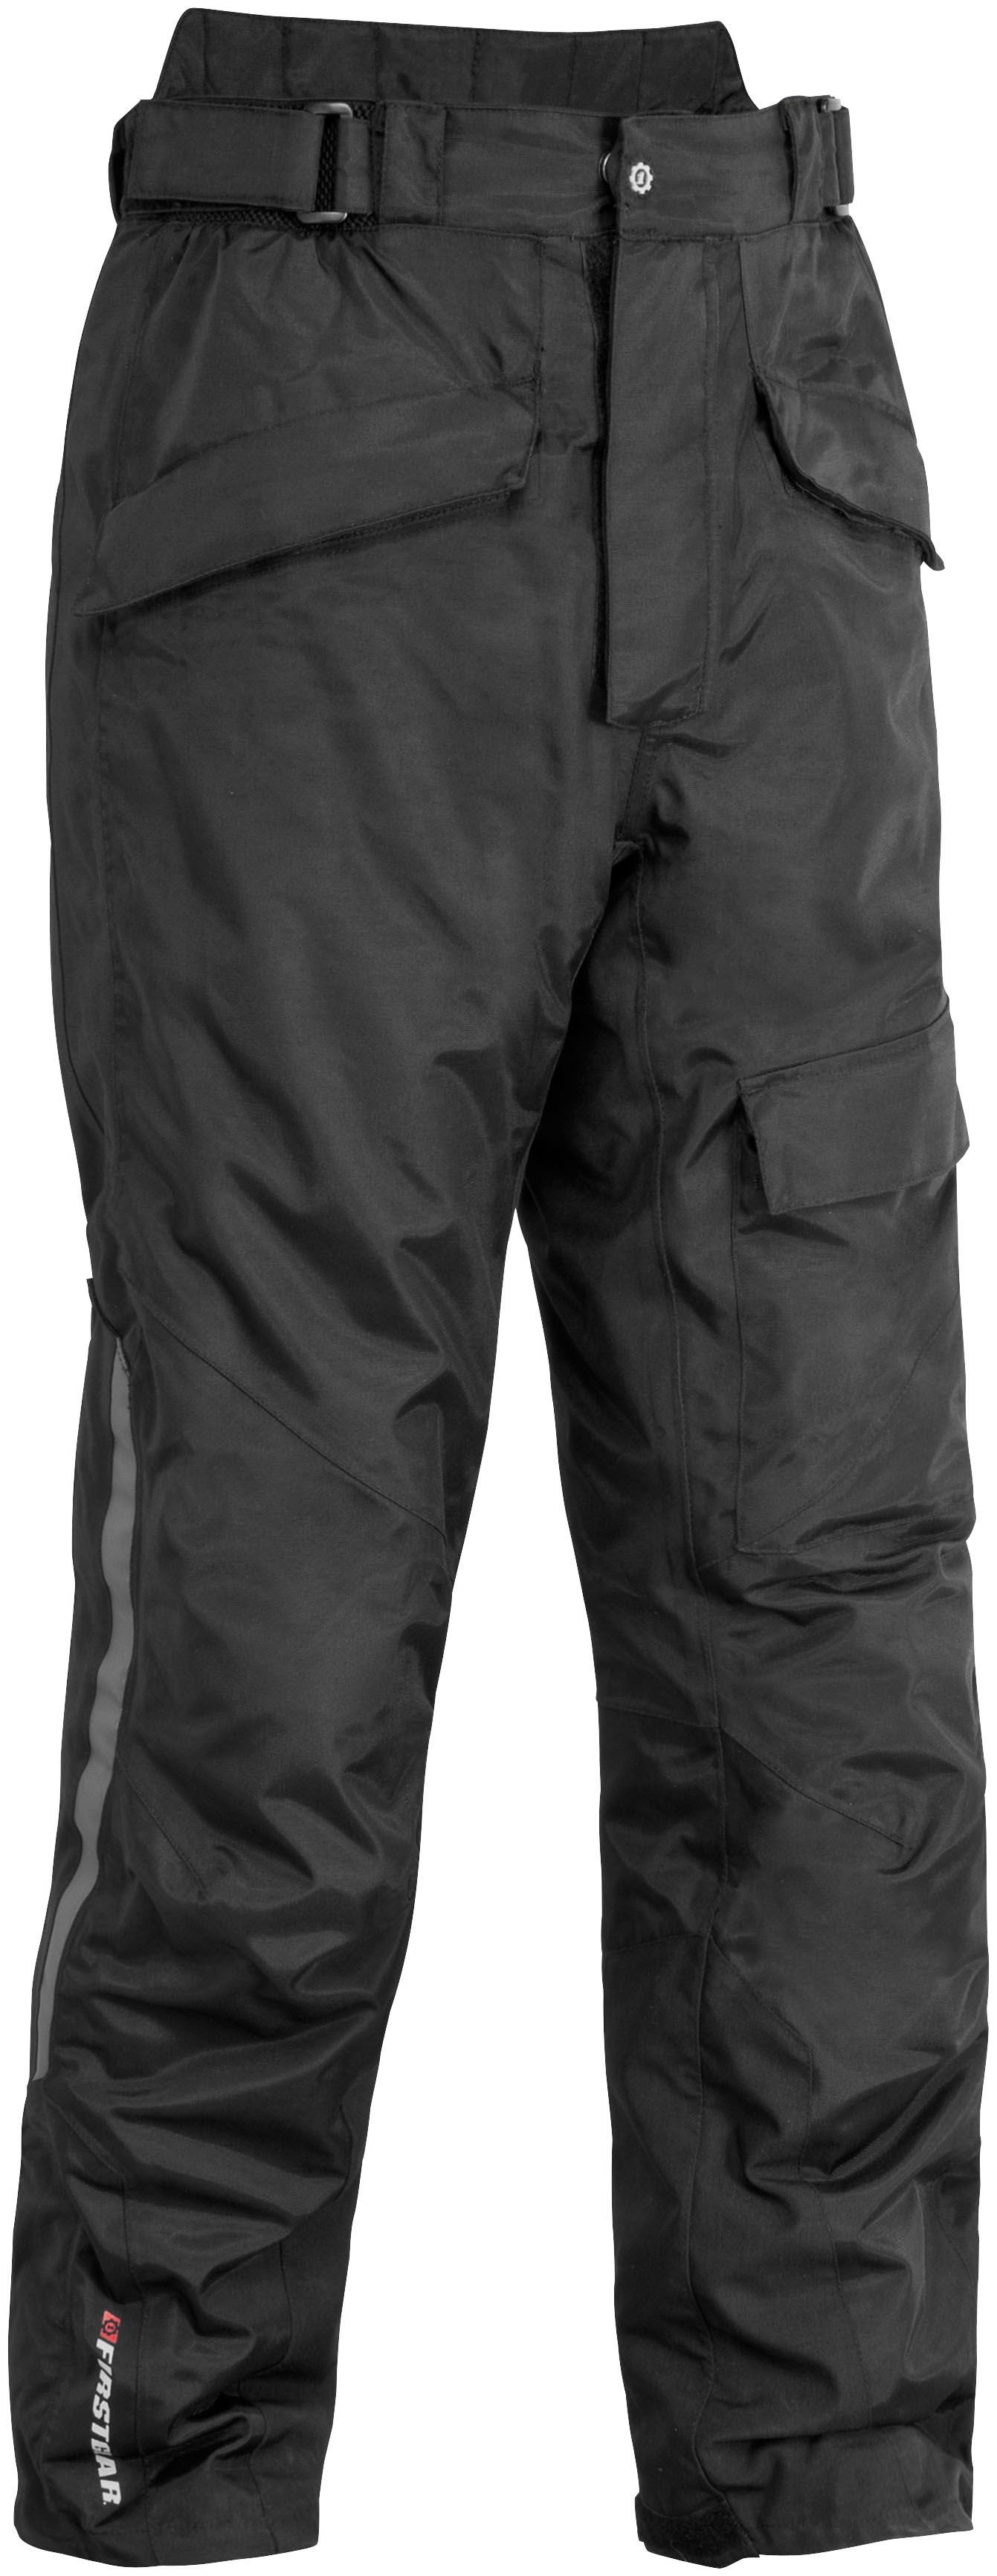 Firstgear 14' HT Overpants